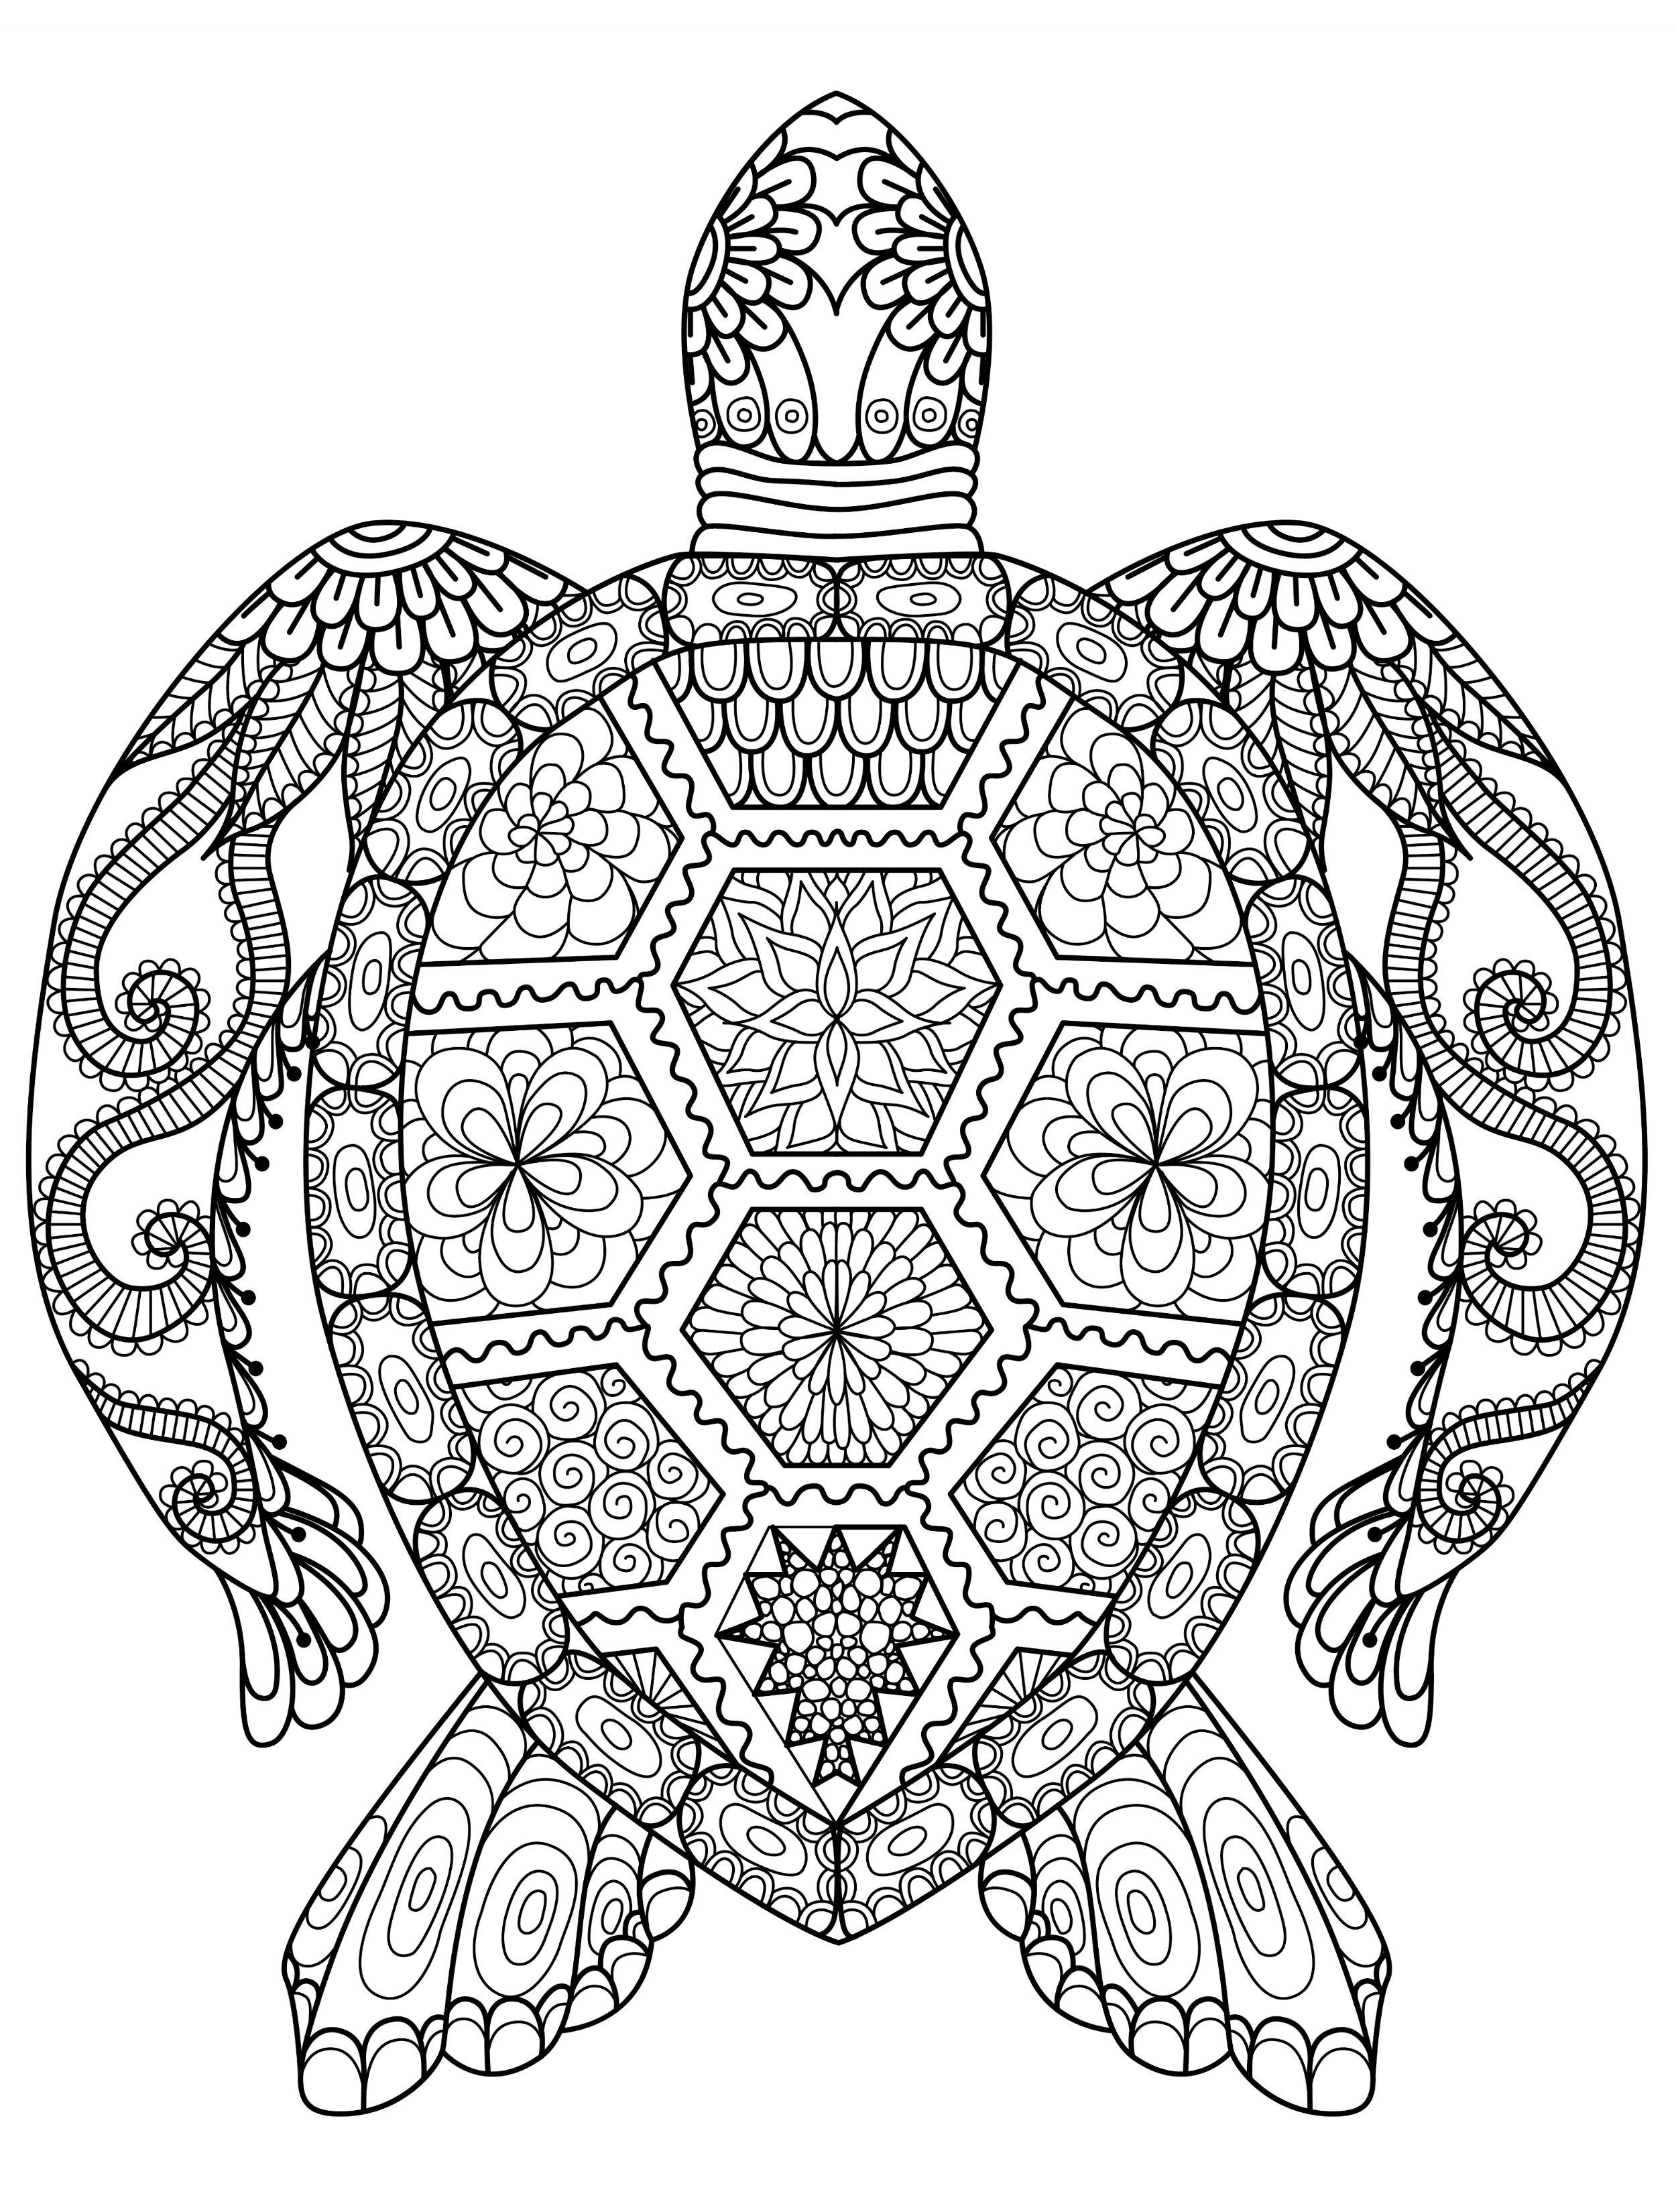 coloring book pages for adults 20 Gorgeous Free Printable Adult Coloring Pages … | Adult Coloring  coloring book pages for adults